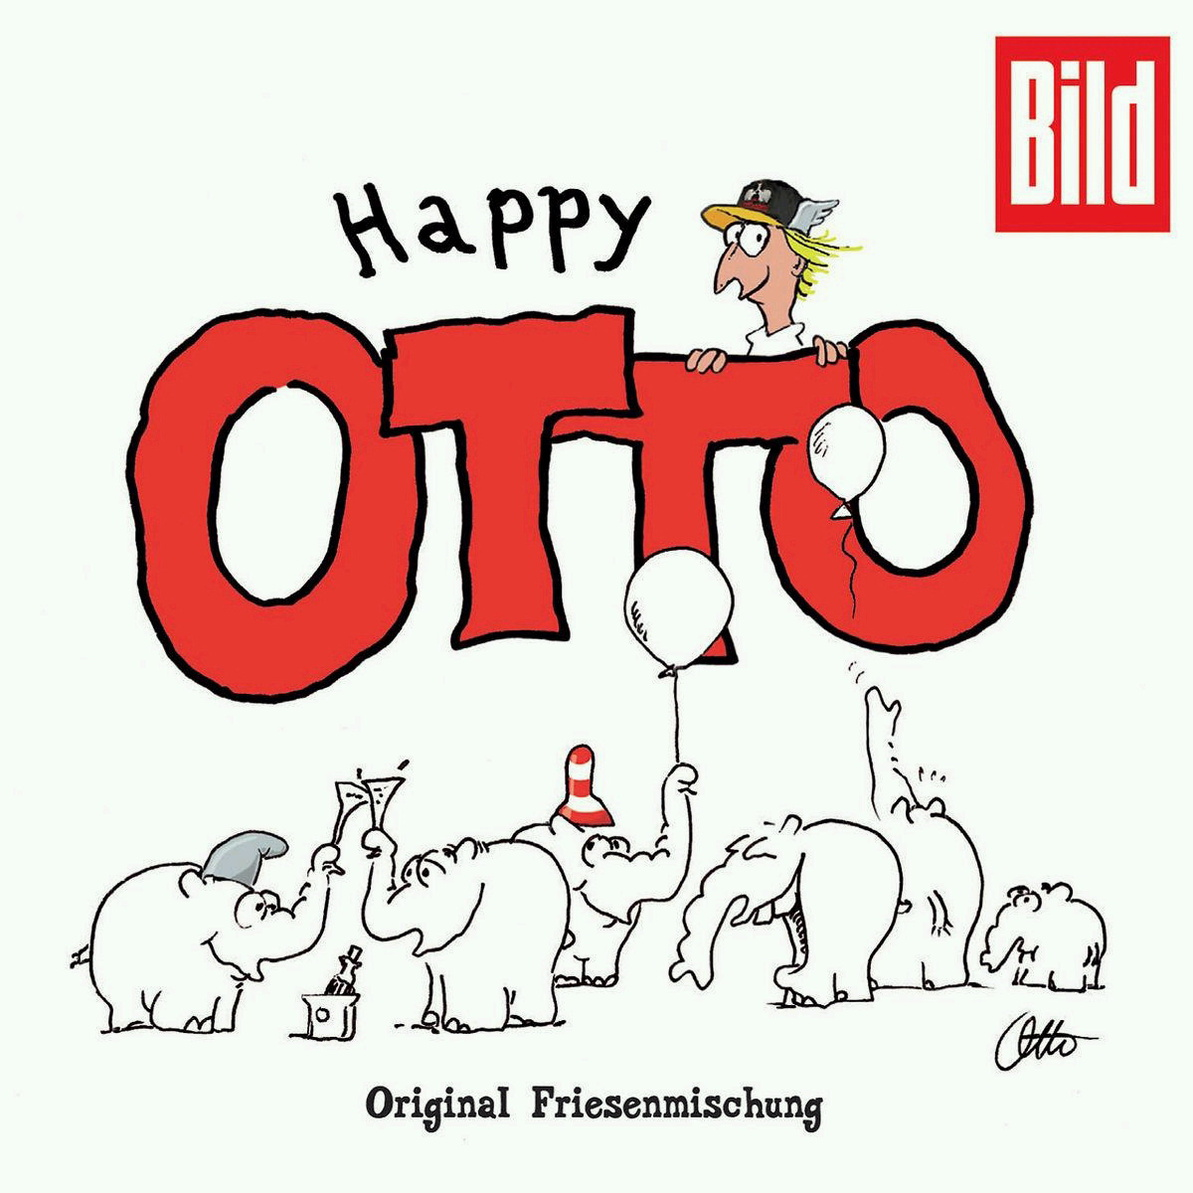 h ppy otto original friesenmischung otto dcd shop f r cd dvd blu. Black Bedroom Furniture Sets. Home Design Ideas